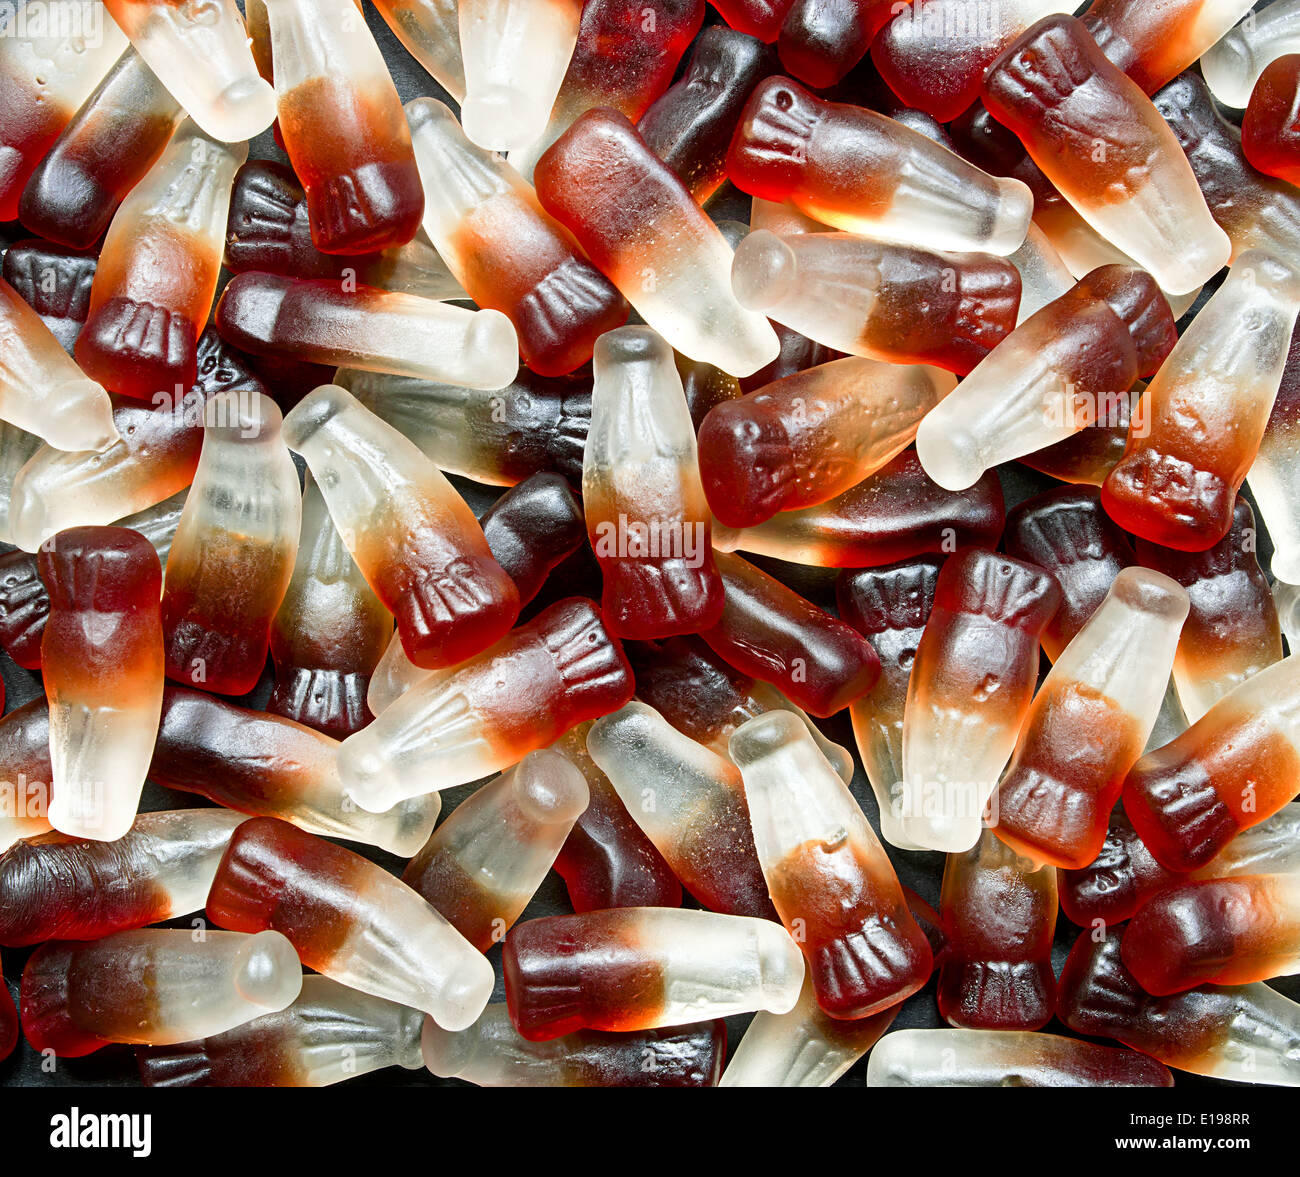 Chewy Cola Bottle background a popular retro sweet also known as Gummy candy at a pick and mix self service market. - Stock Image